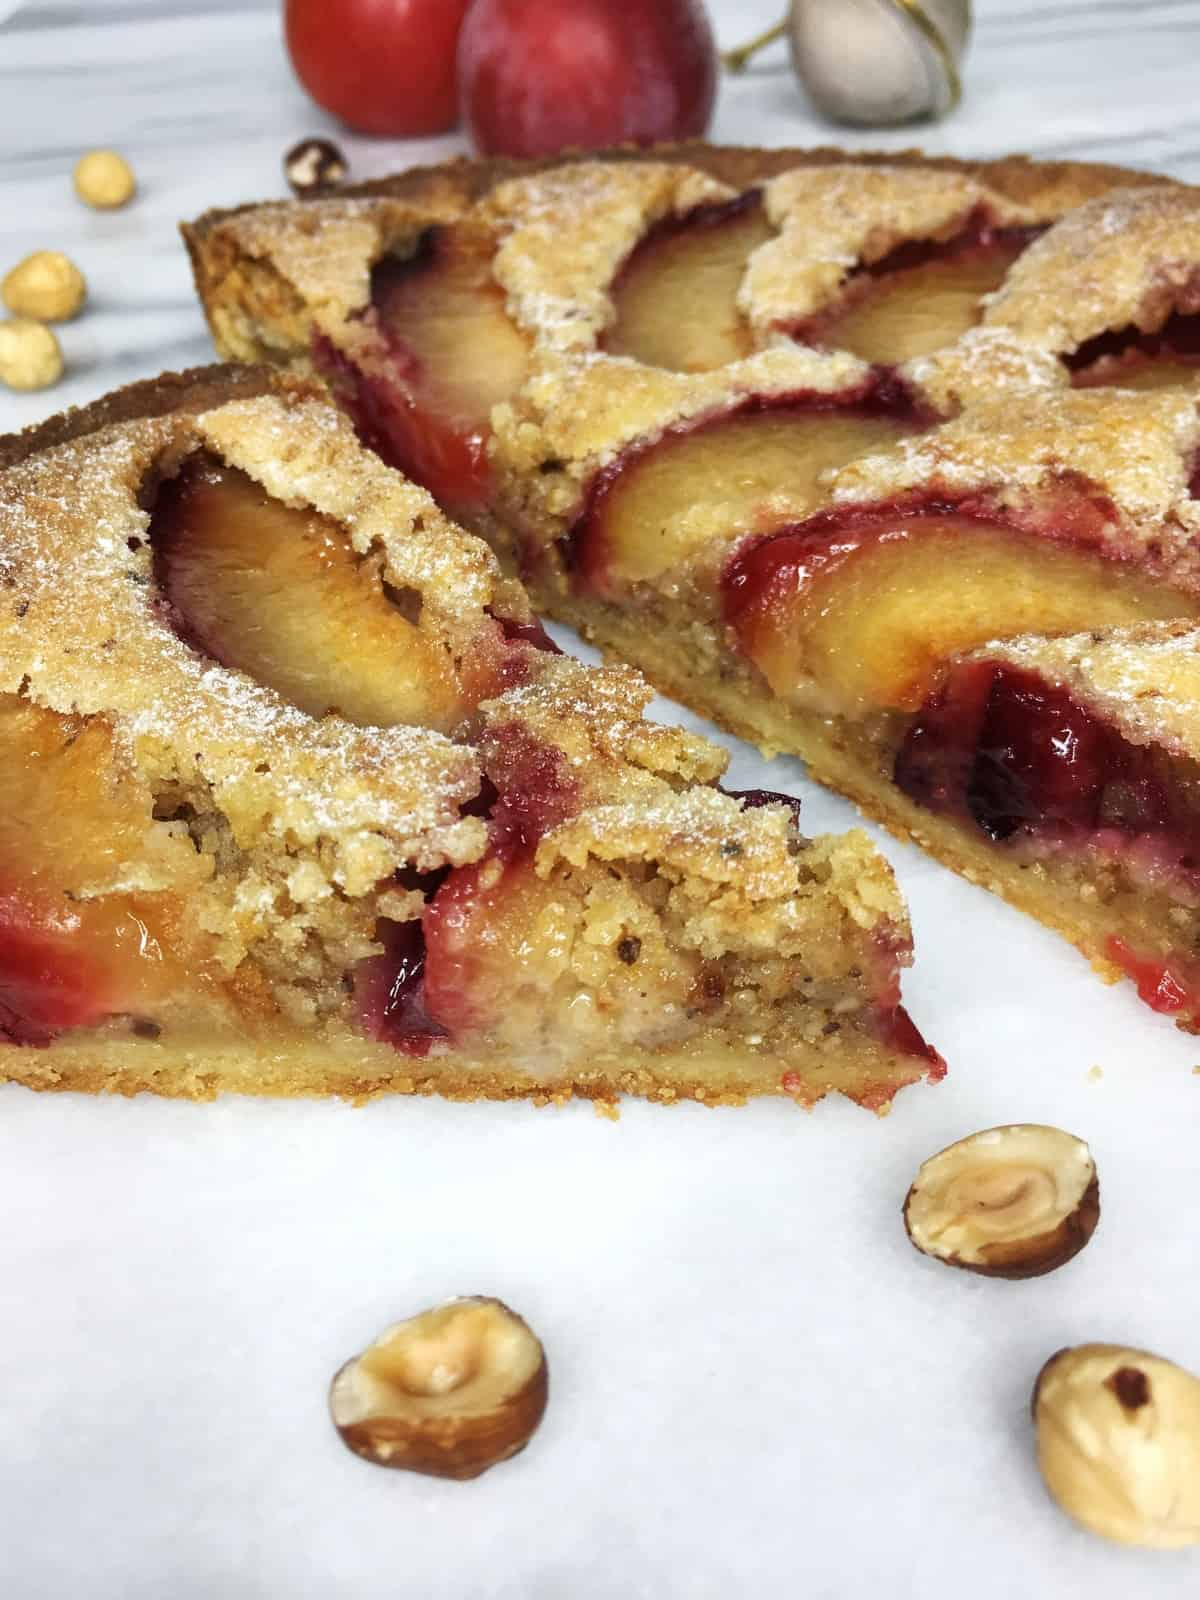 Sliced Plum tart with hazelnuts and plums on background